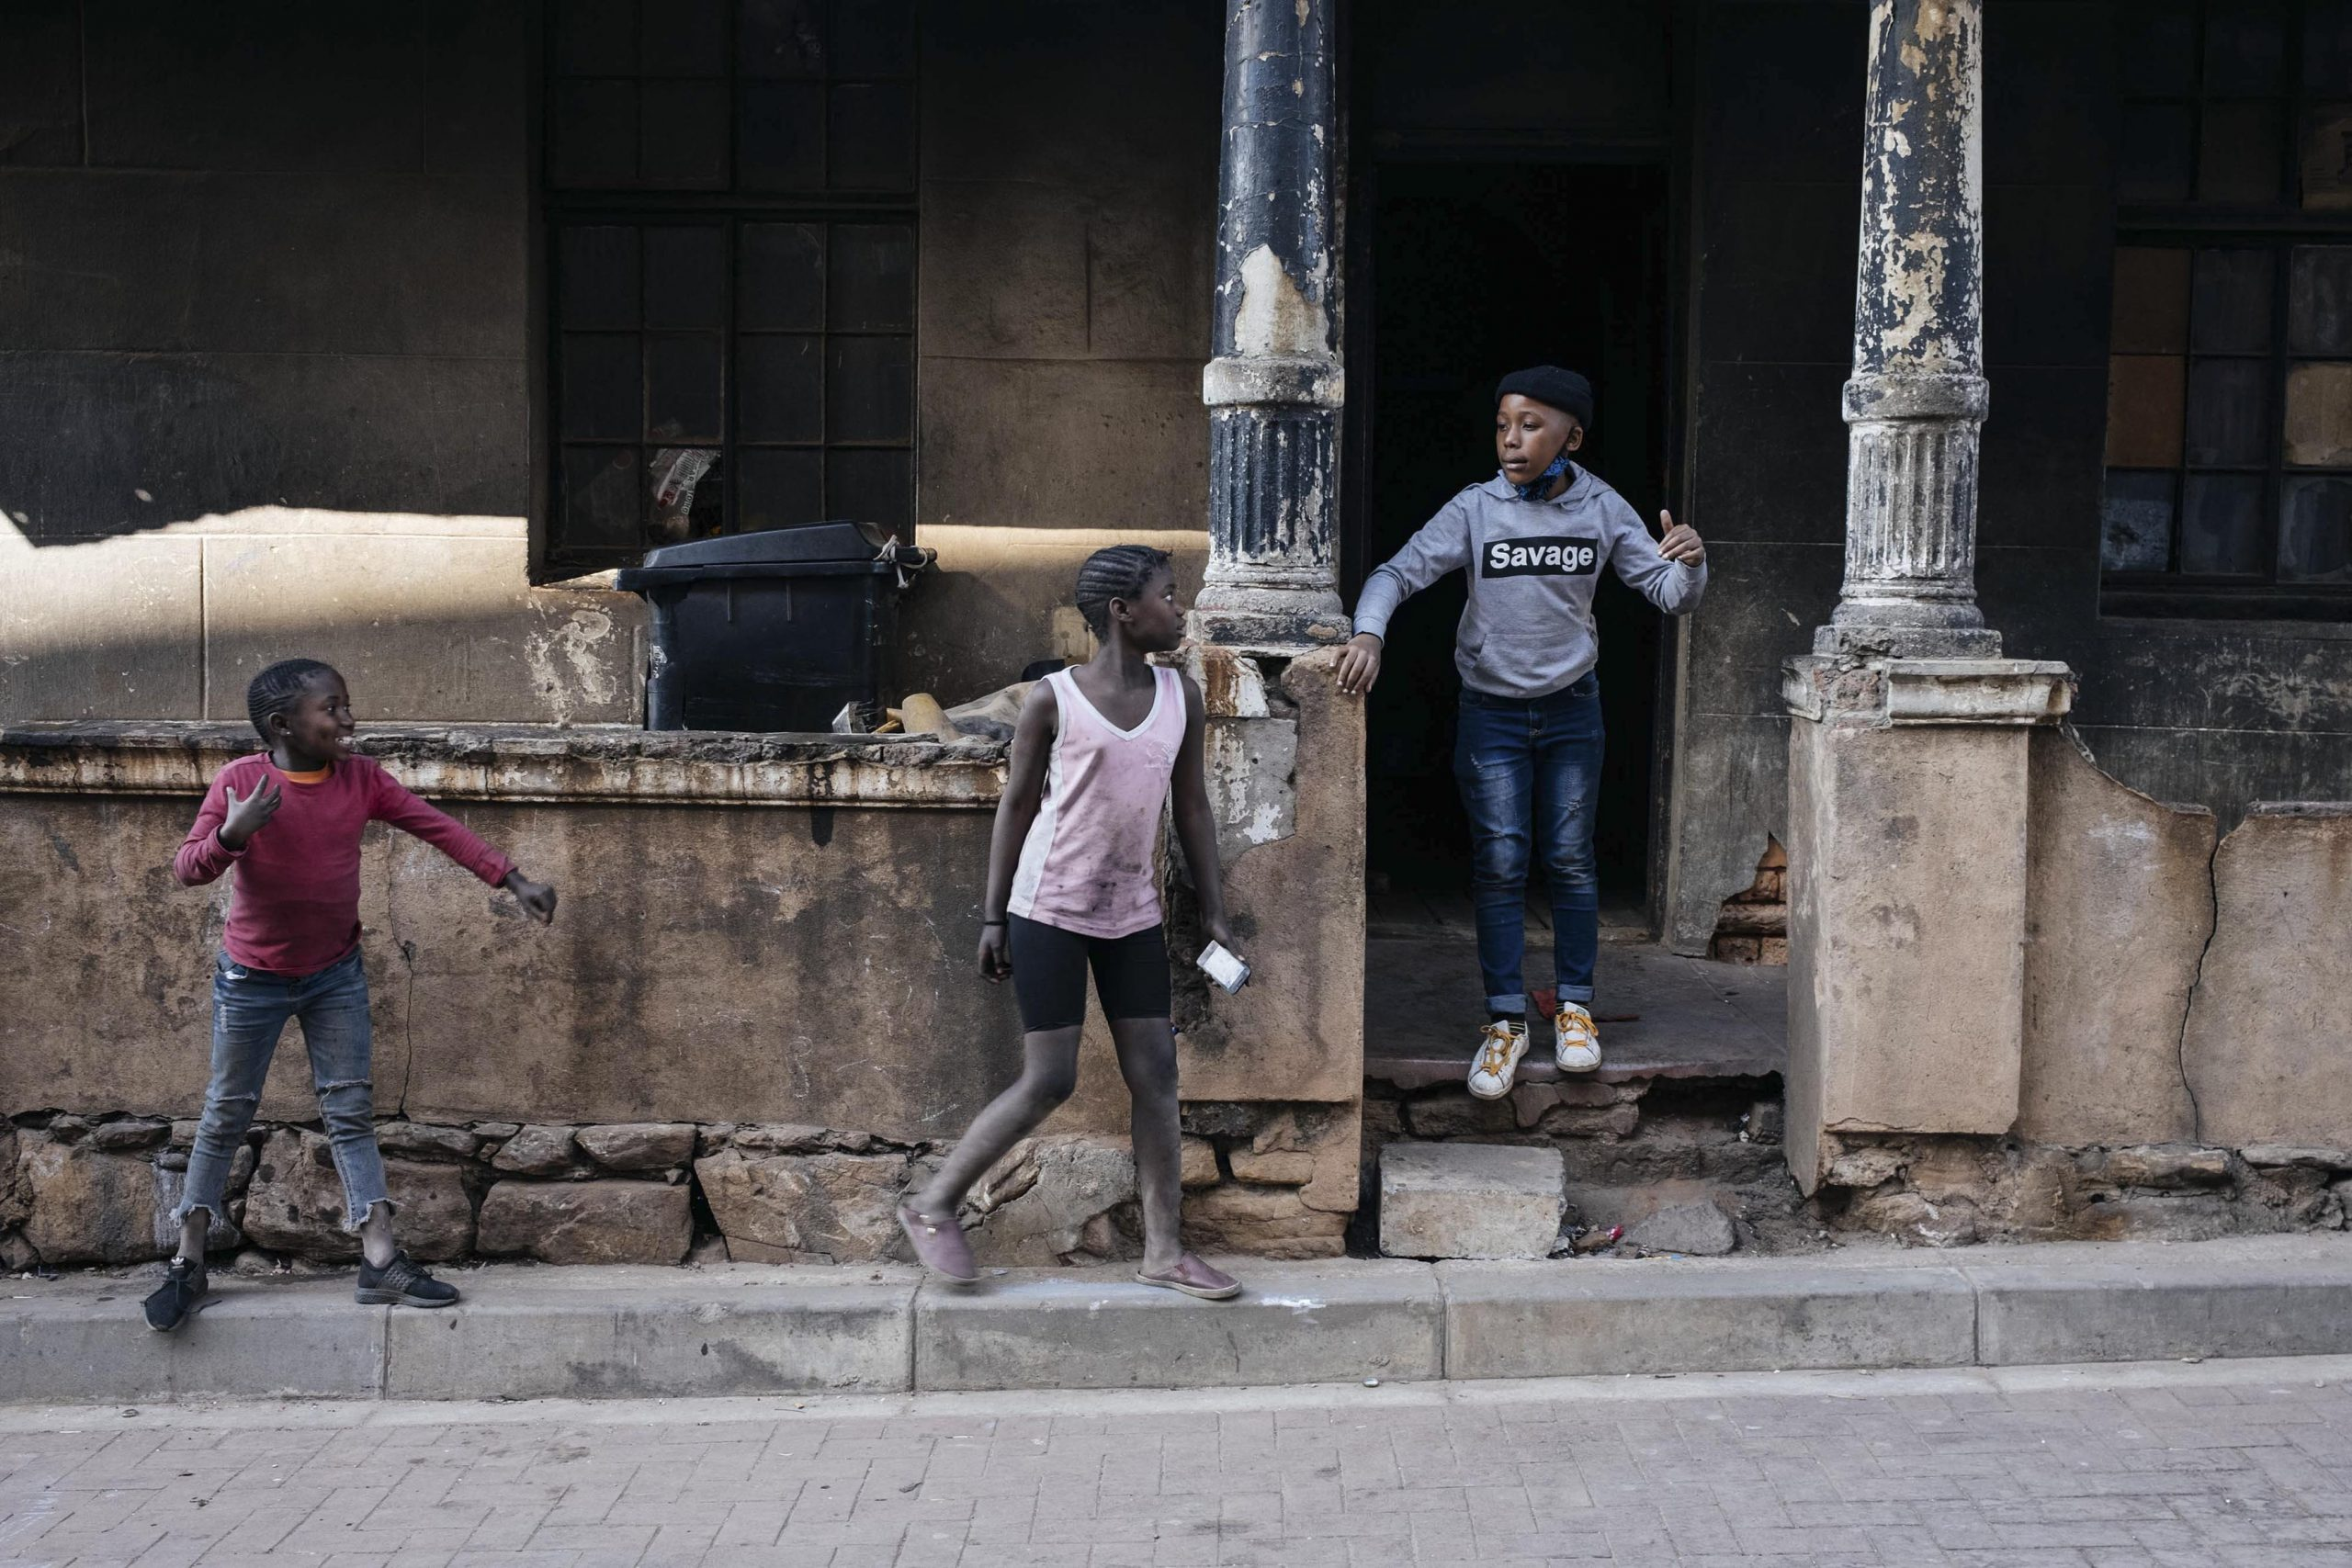 16 July 2020: Karabo Mokoena plays with friends outside the front entrance of the Gomorrah Building, the dilapidated structure without running water, toilets or electricity in Joburg's inner city that is their home.